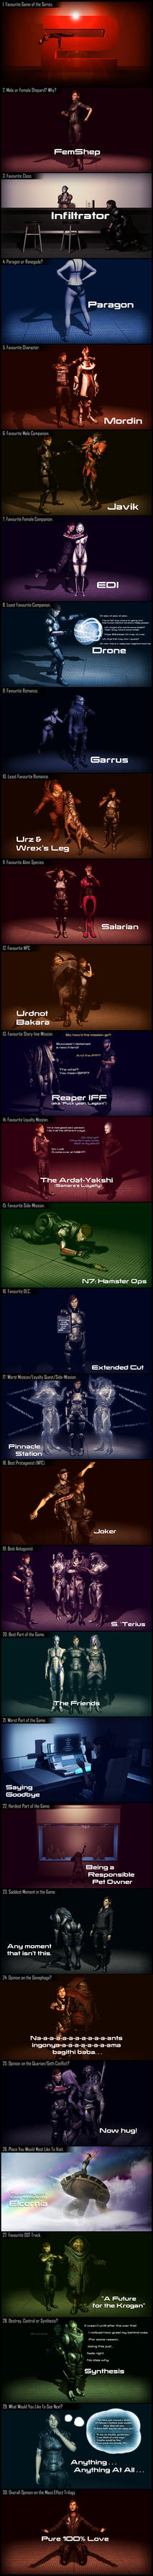 30 Day Mass Effect Challenge by ImperatorAlicia